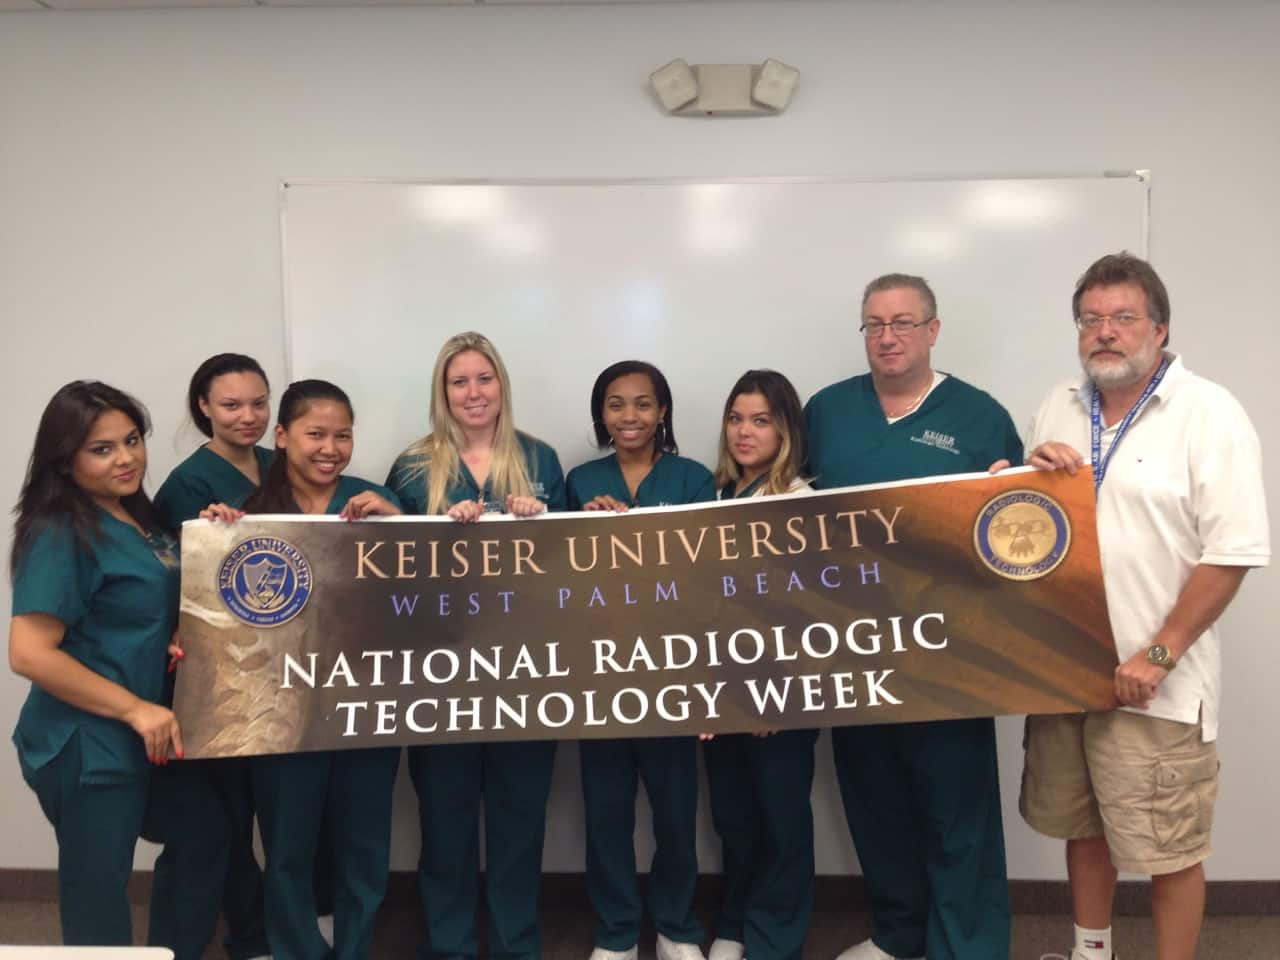 Radiologic Technology Week